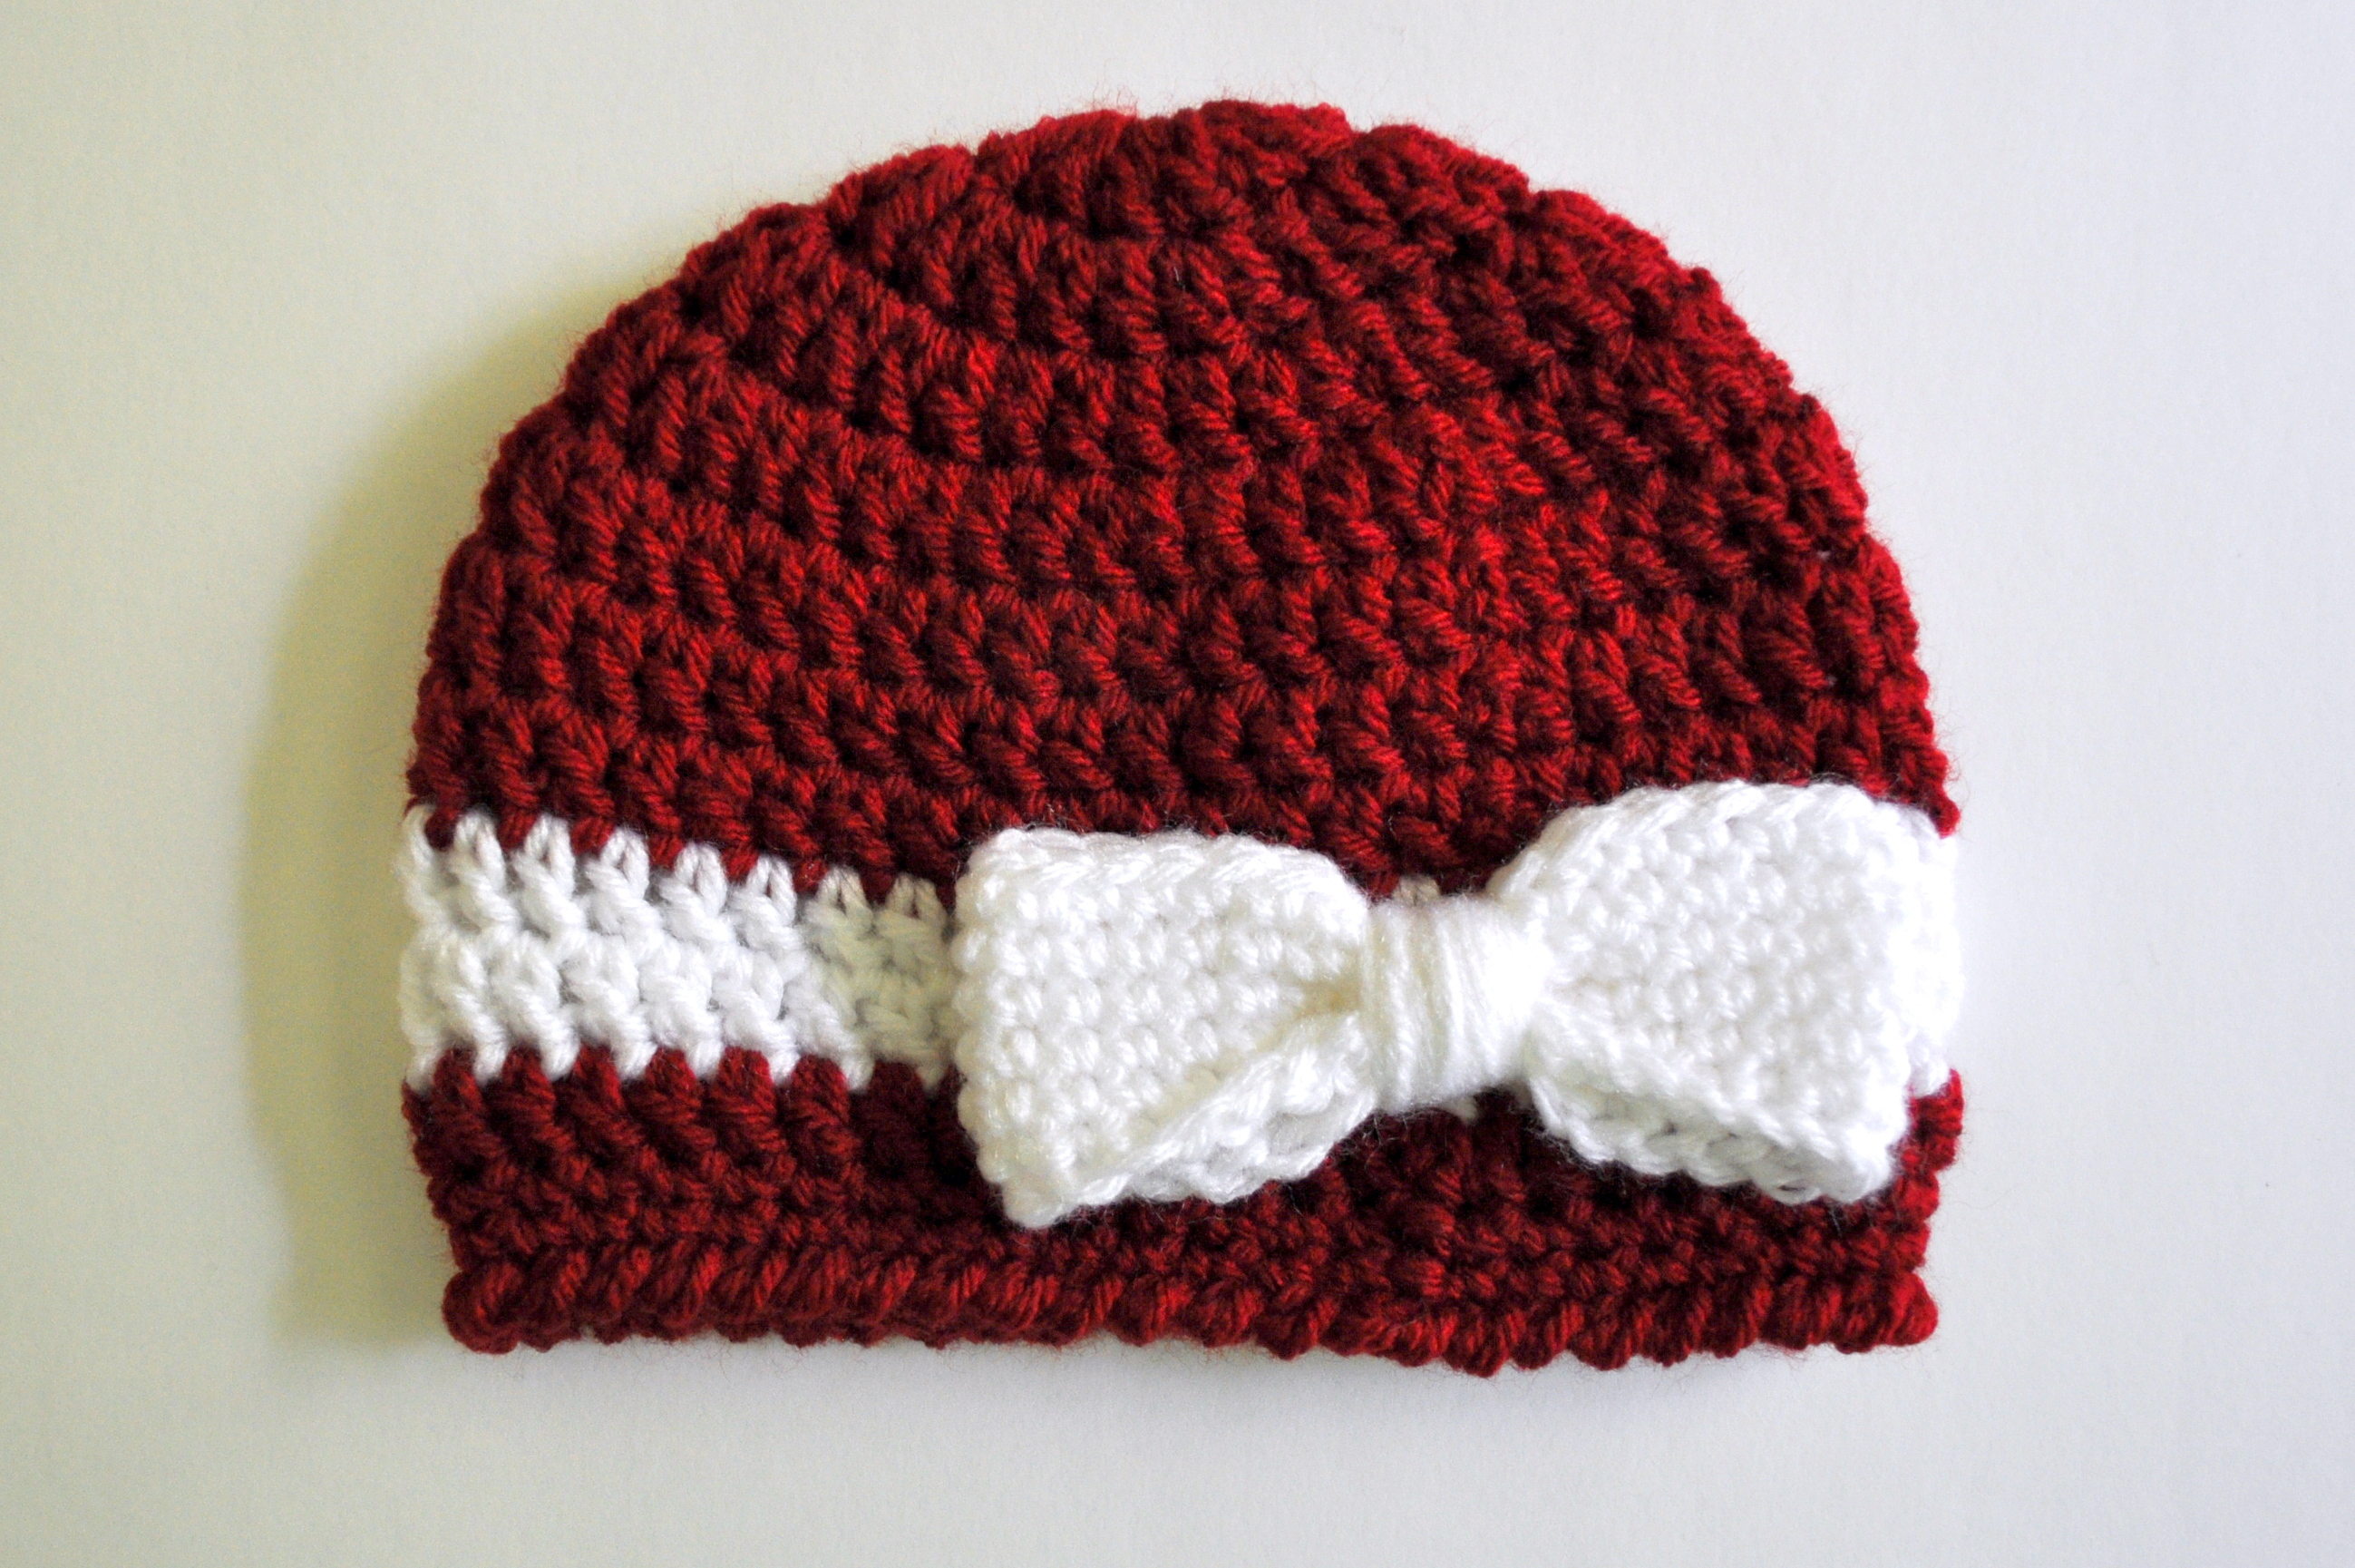 Free pattern crochet bow and ribbon baby hat classy crochet crochet ribbon and bow baby hat pattern classy crochet dt1010fo